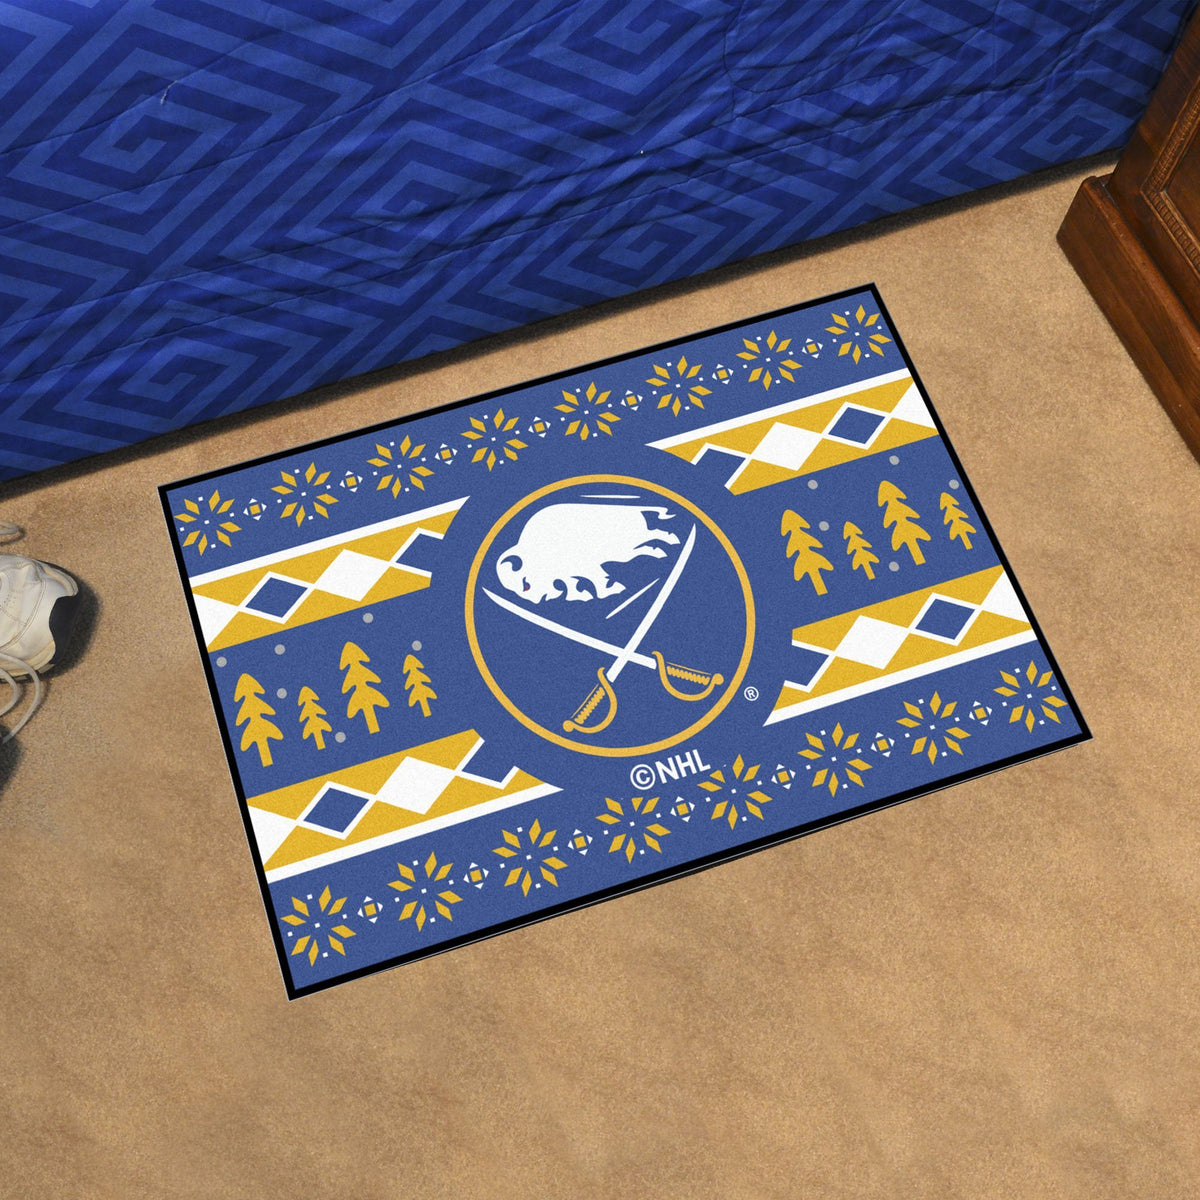 NHL - Holiday Sweater Starter Mat NHL Mats, Rectangular Mats, Holiday Sweater Starter Mat, NHL, Home Fan Mats Buffalo Sabres